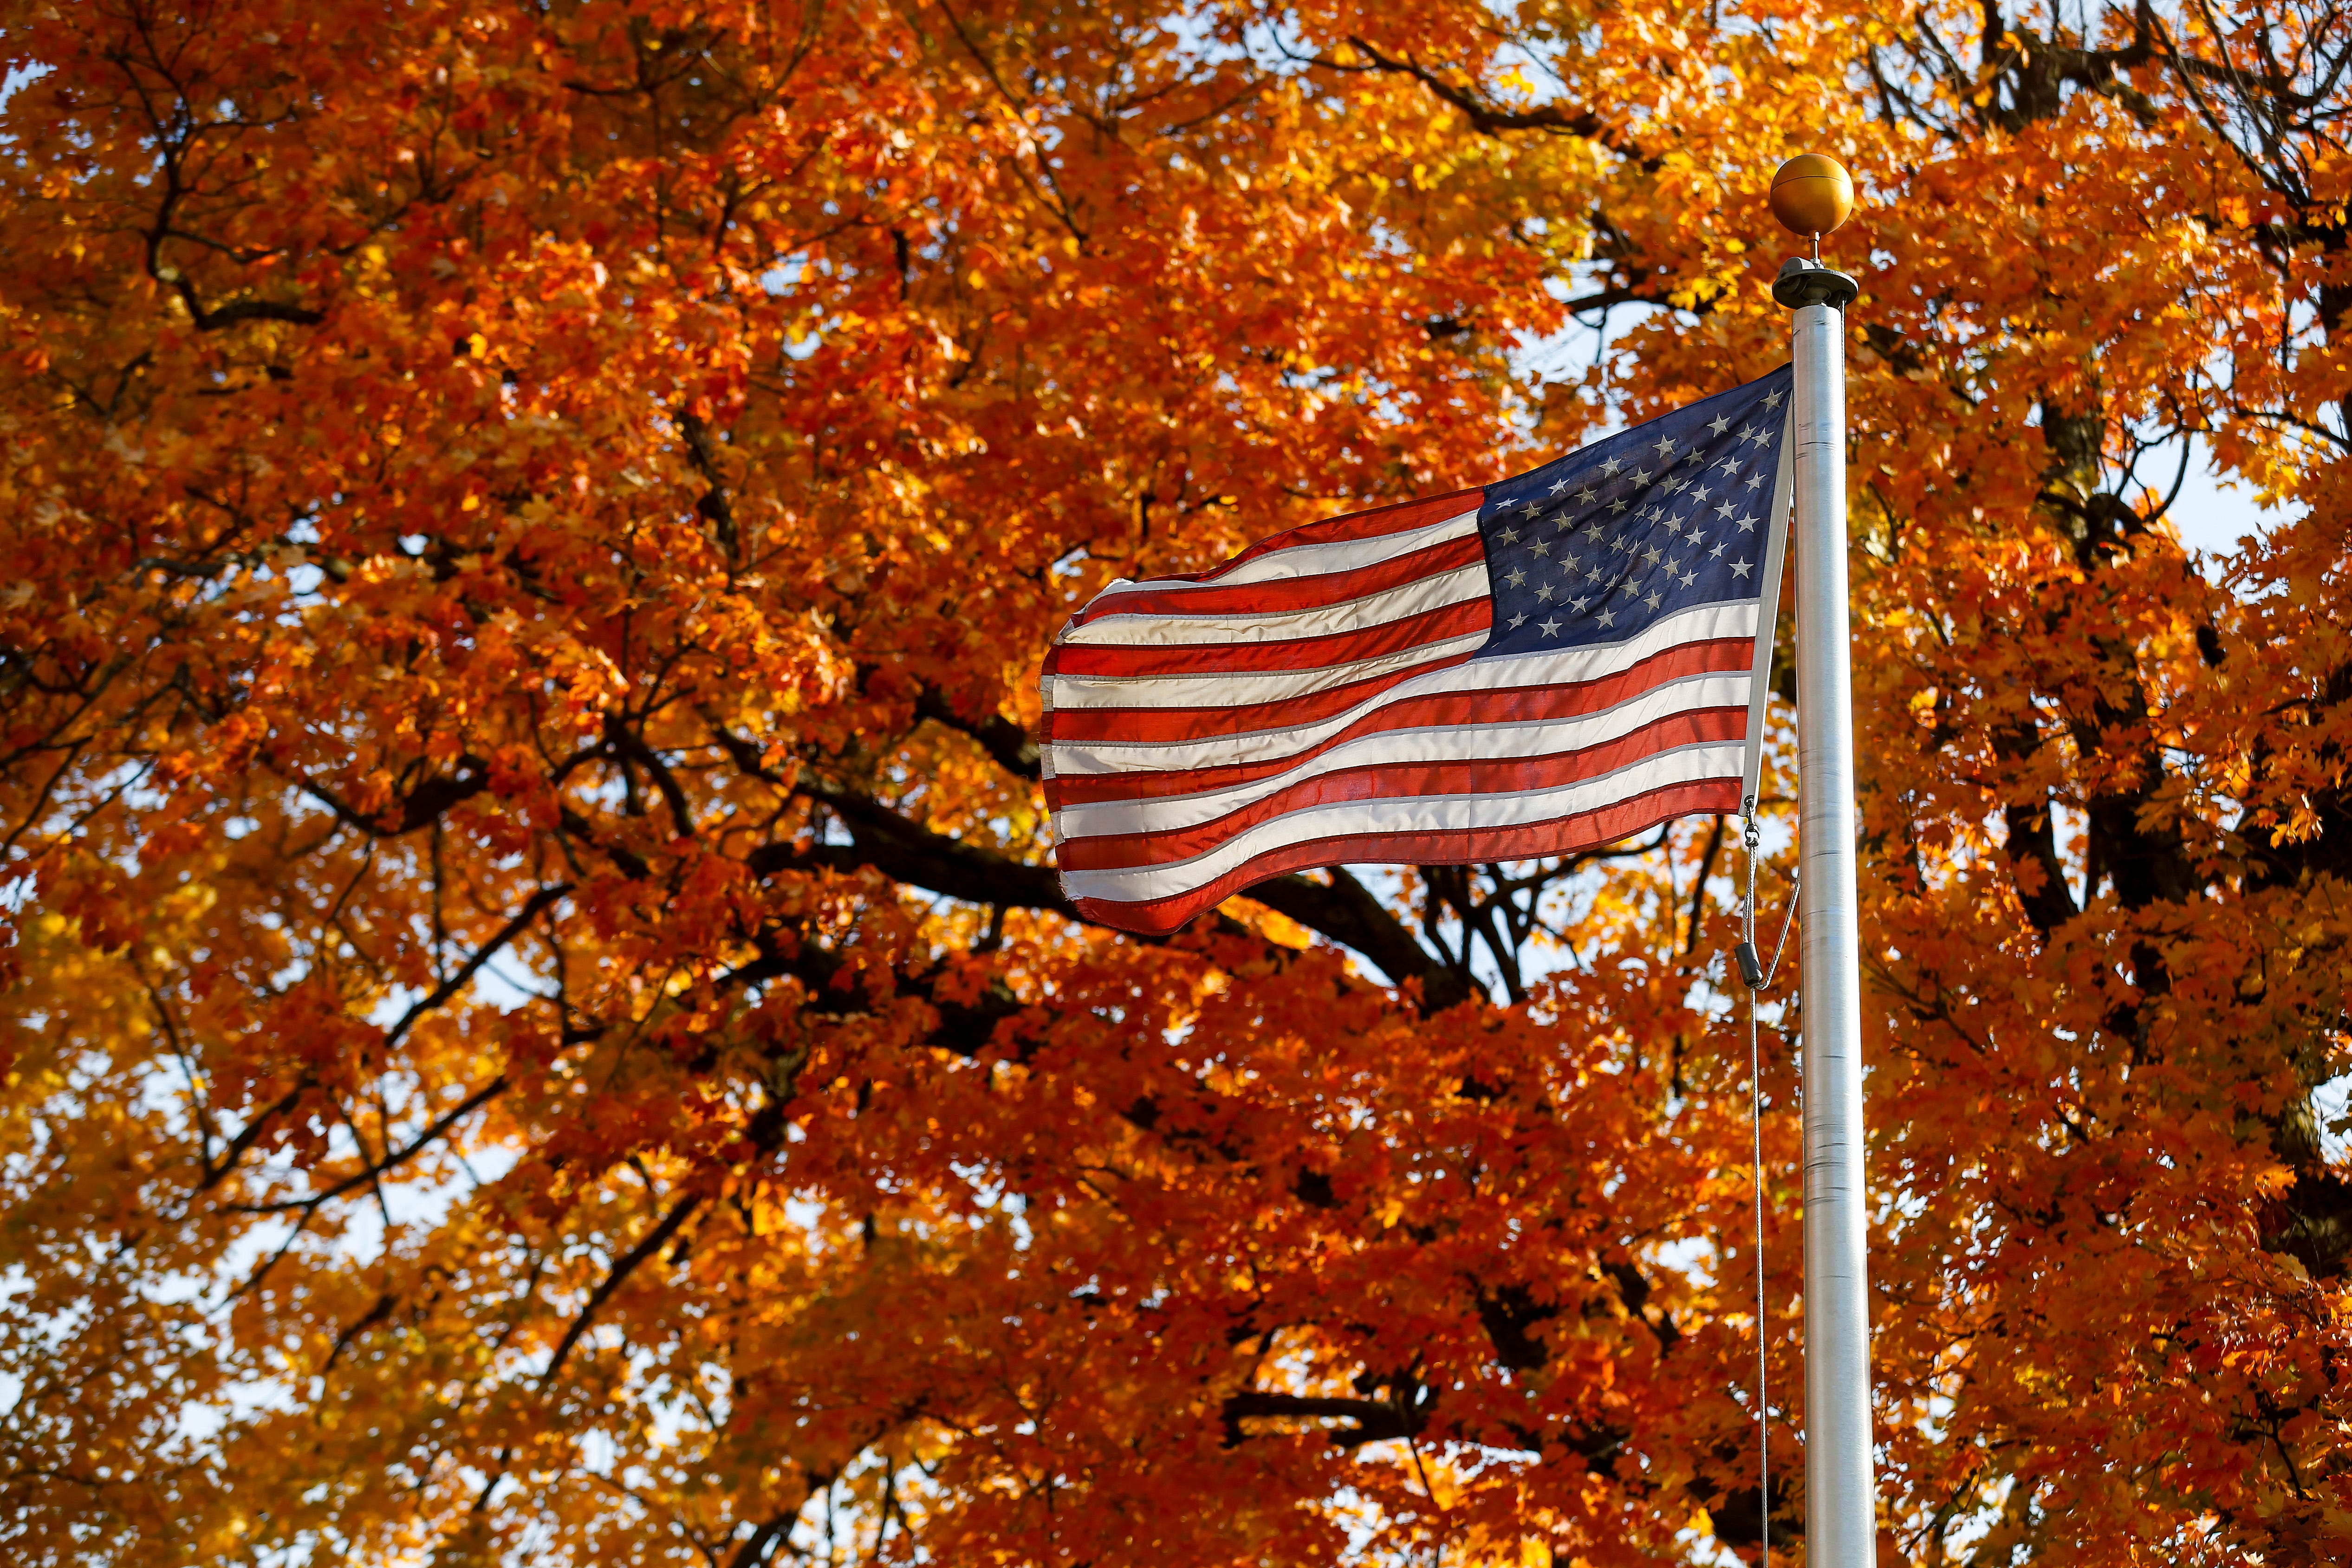 The American flag blows in the breeze in front of colorful fall leaves at Lincoln Memorial Cemetery on Tuesday, Oct. 30, 2018.